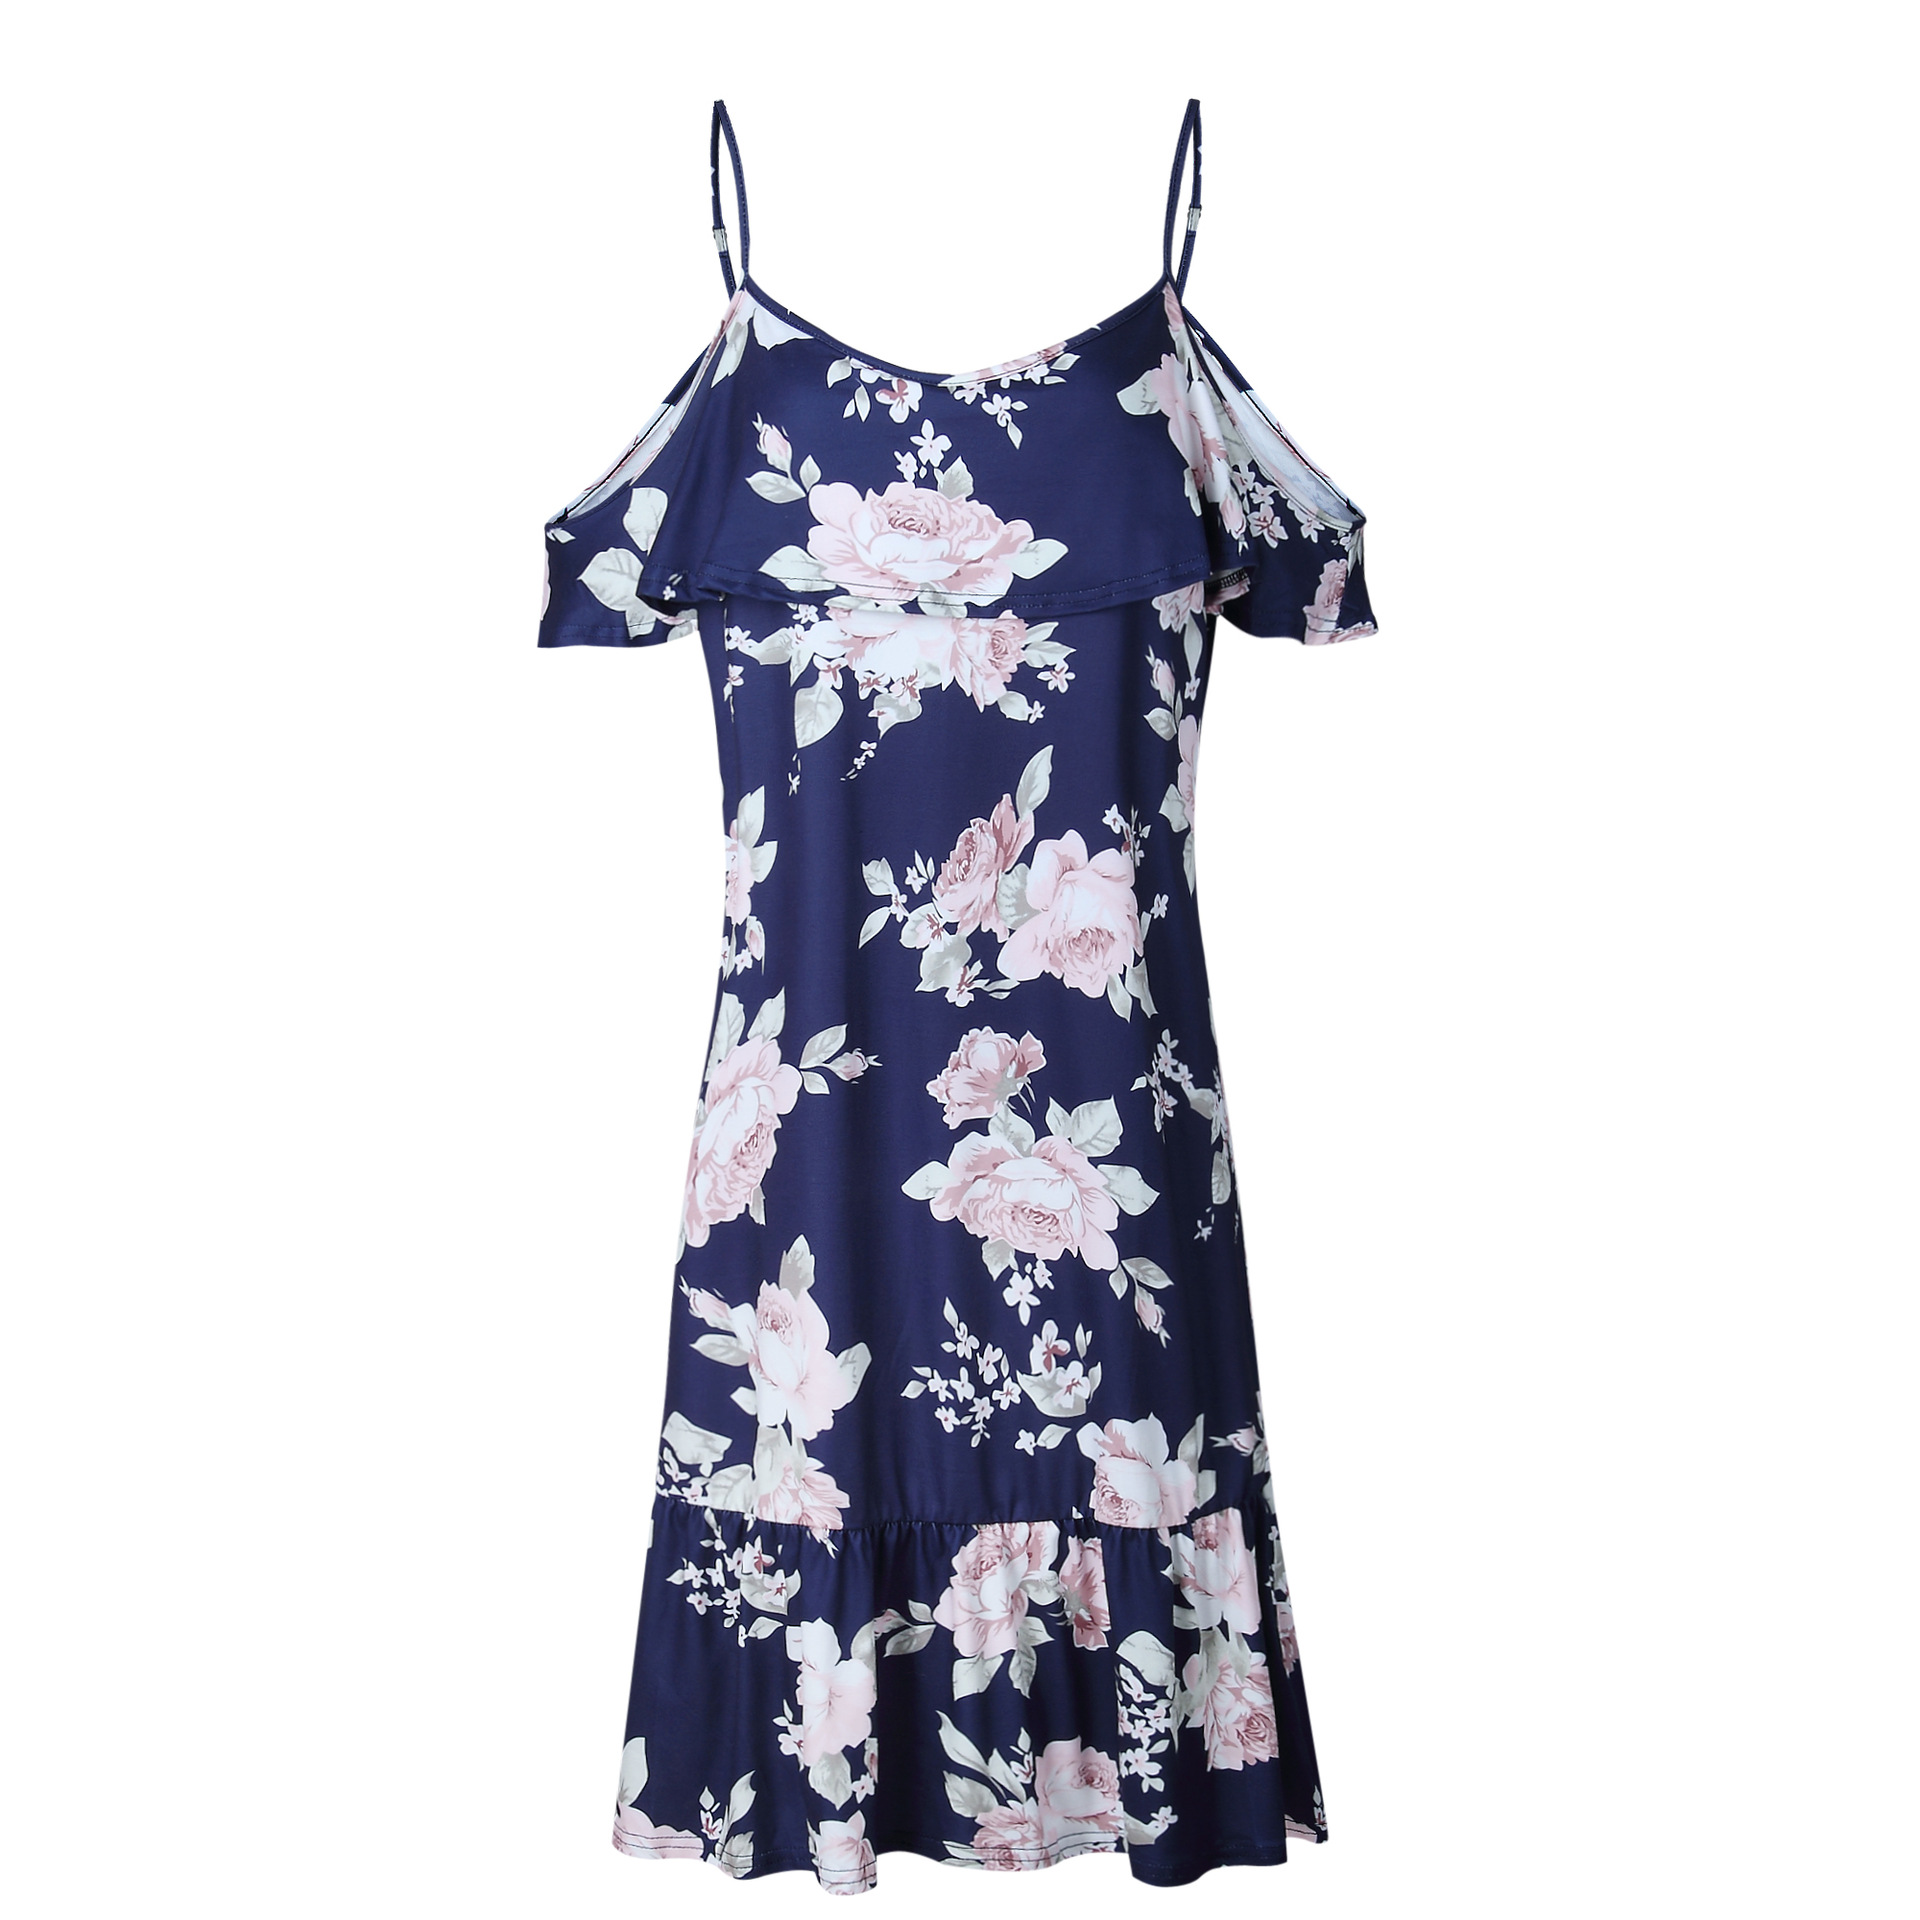 2019 Womens Summer Popular Style Print Dresses Sexy Club Casual Vintage Beach Sun Dress in Dresses from Women 39 s Clothing